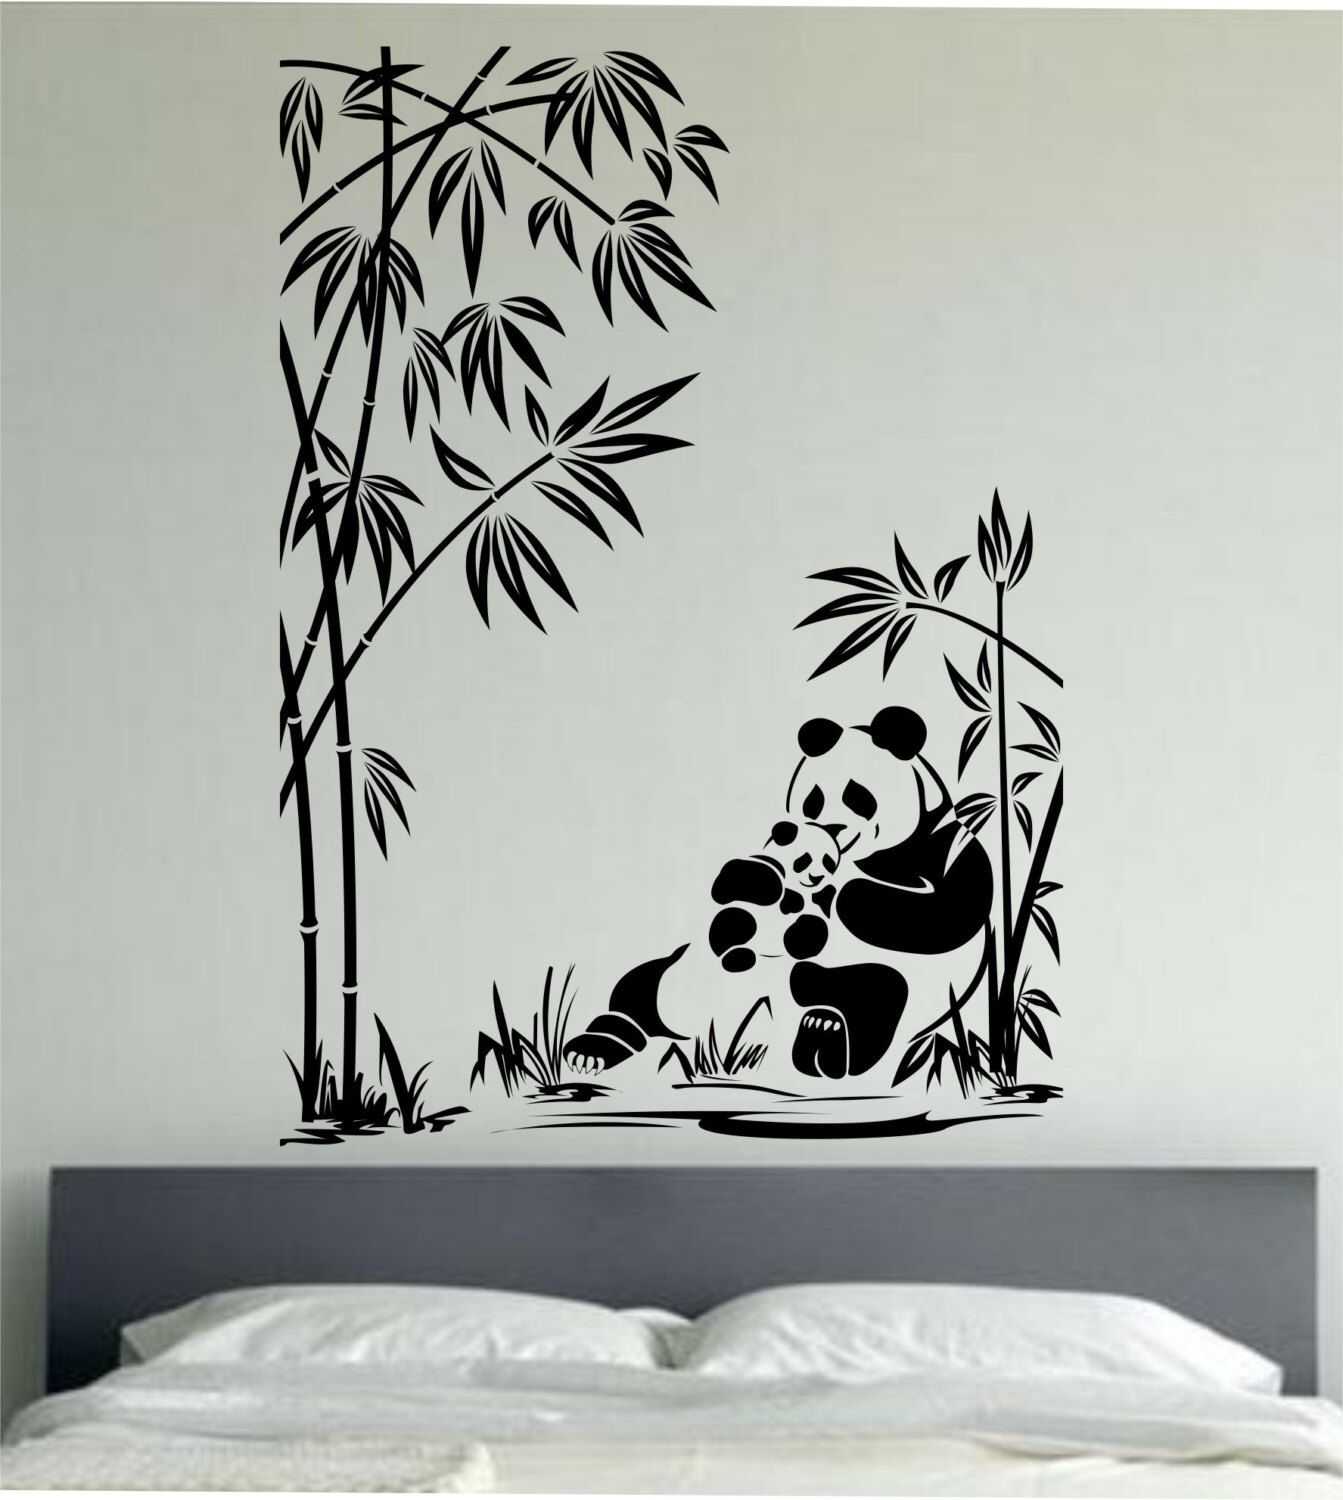 panda wall decal panda family sticker art decor bedroom